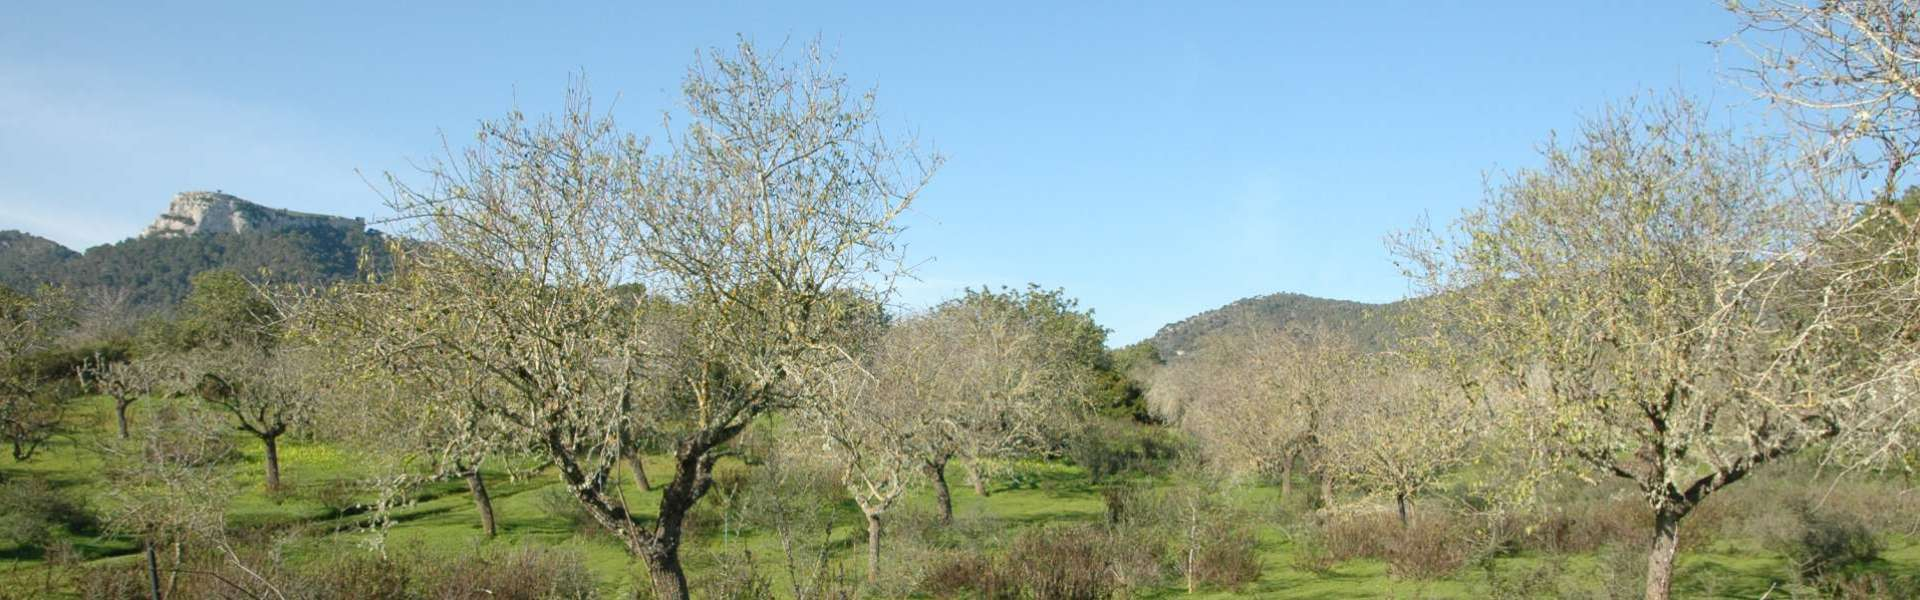 S'Horta - Plot of land next to Vall D'Or golf course